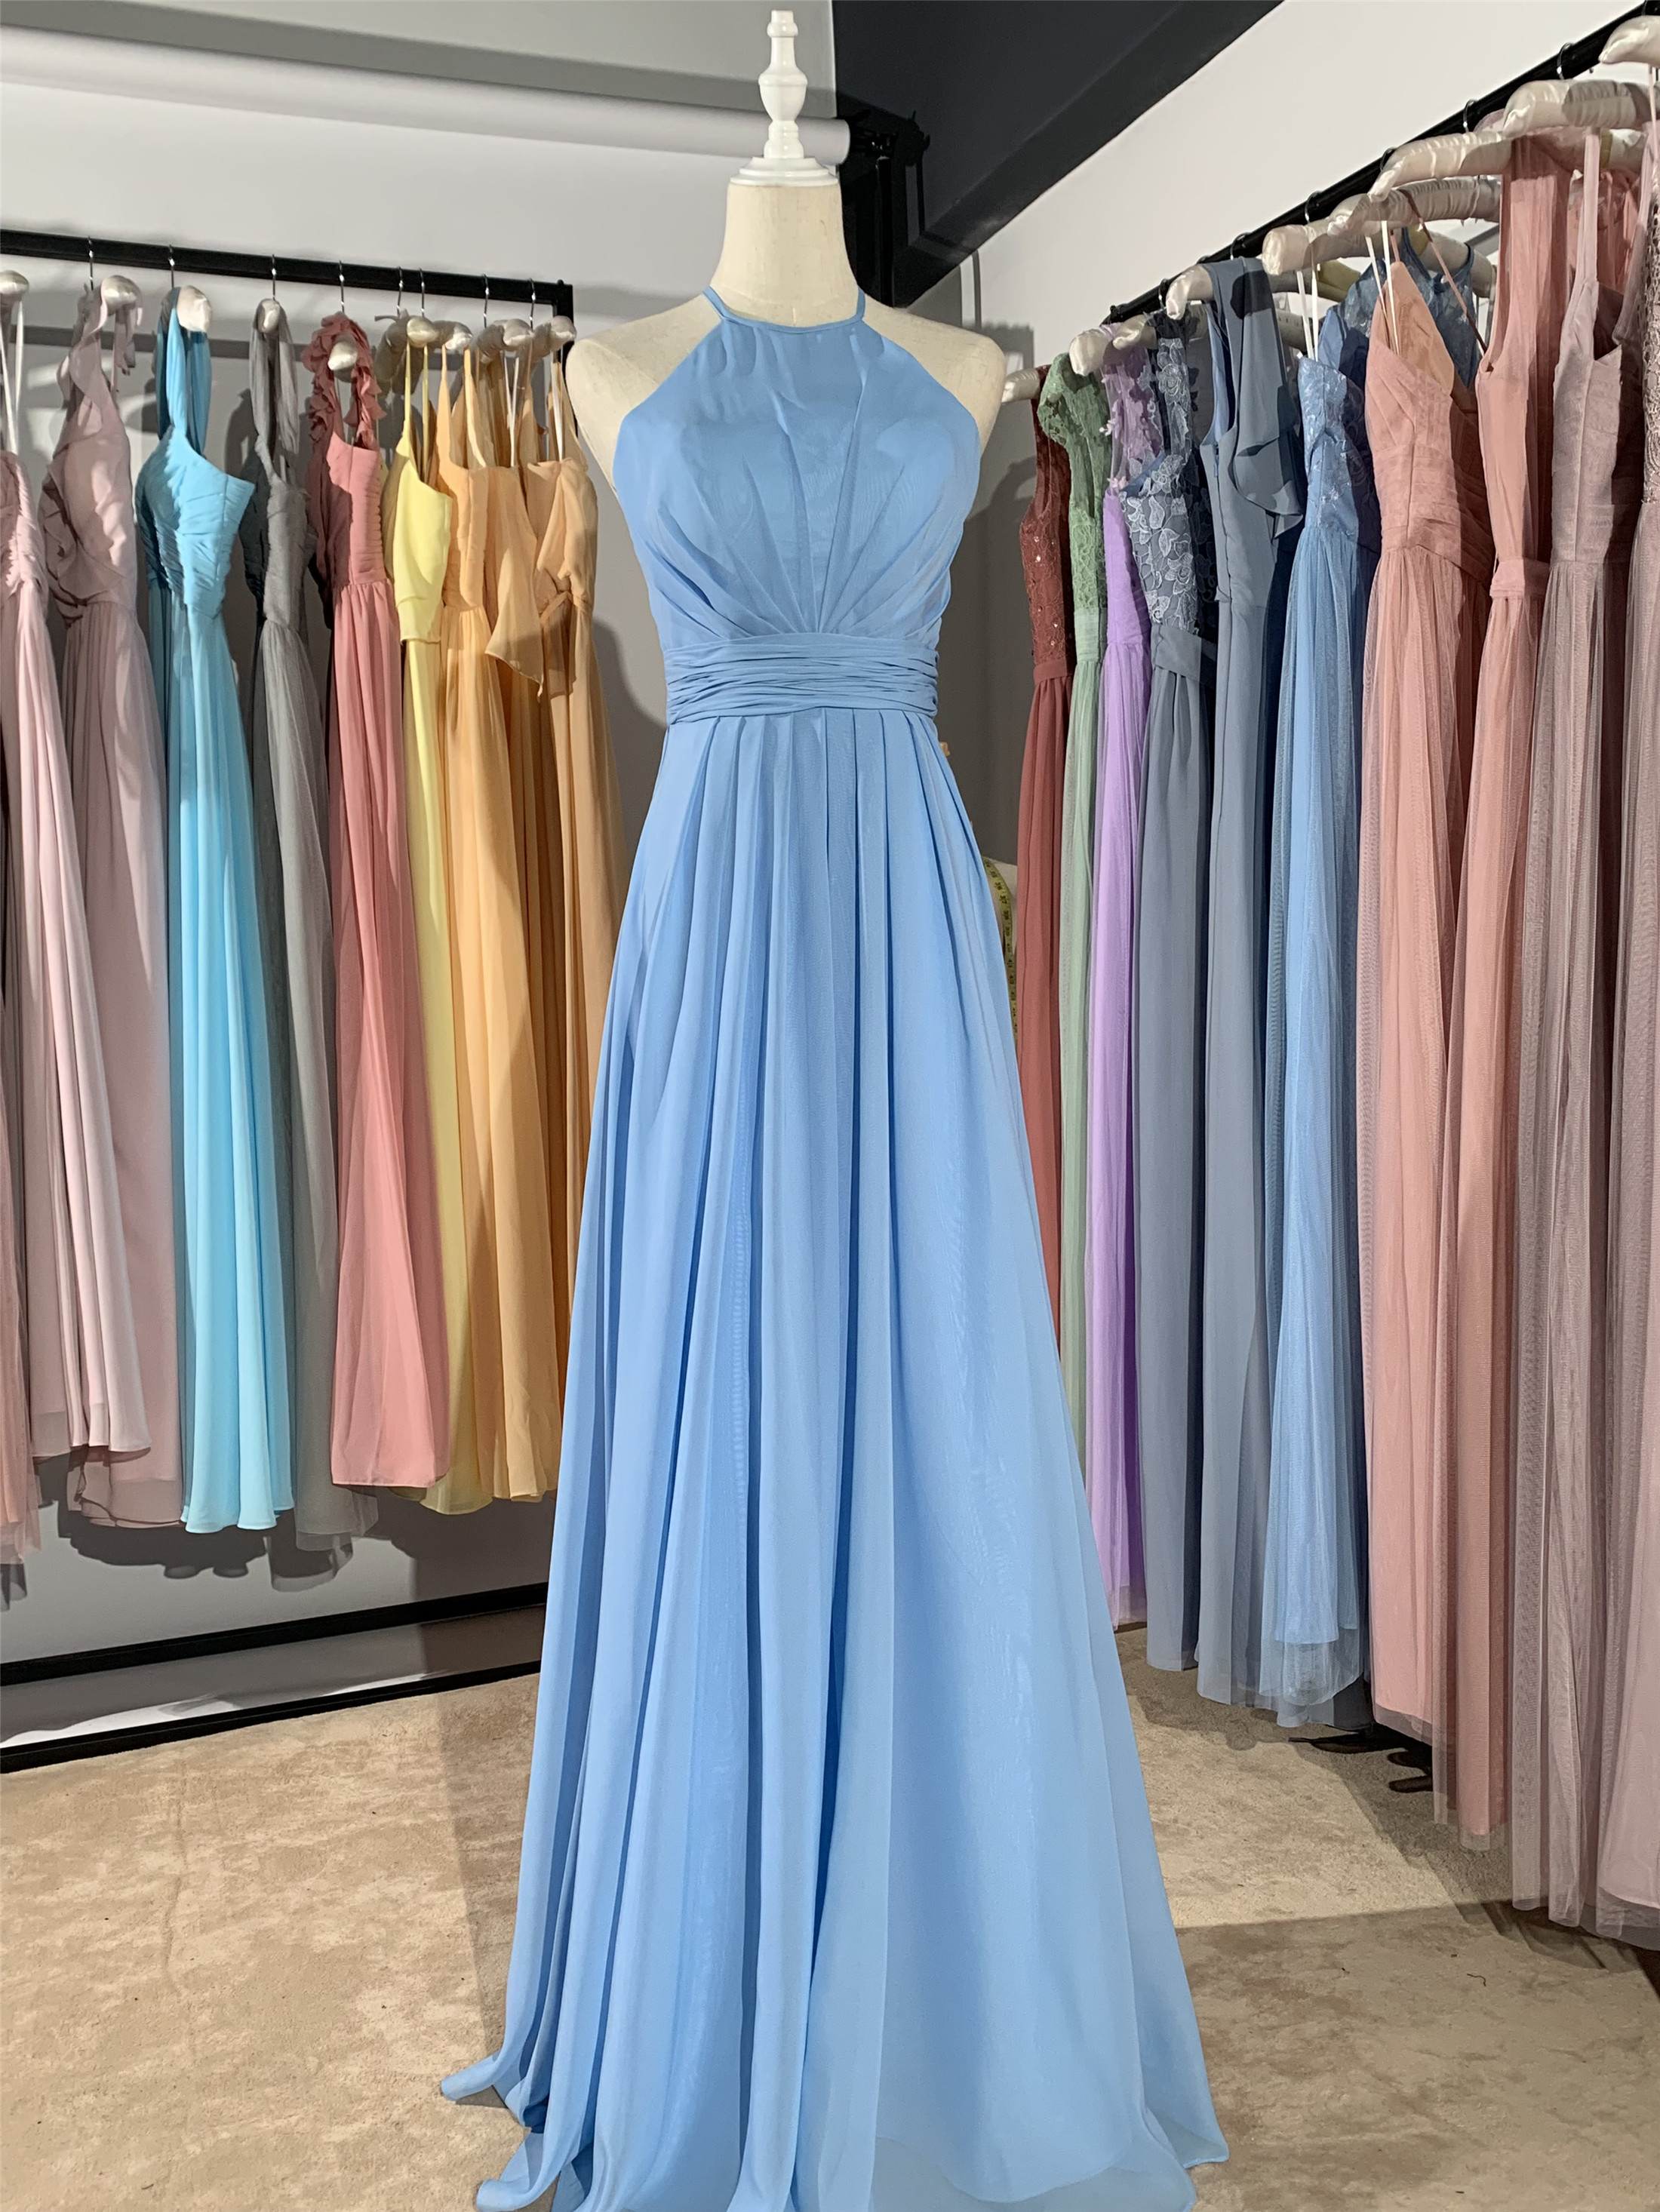 2019 New Different Color Sky Blue Long Small Neck Luckgirls  Chiffon Customizable Fashion Bridesmaid Dress Mocini Tailor